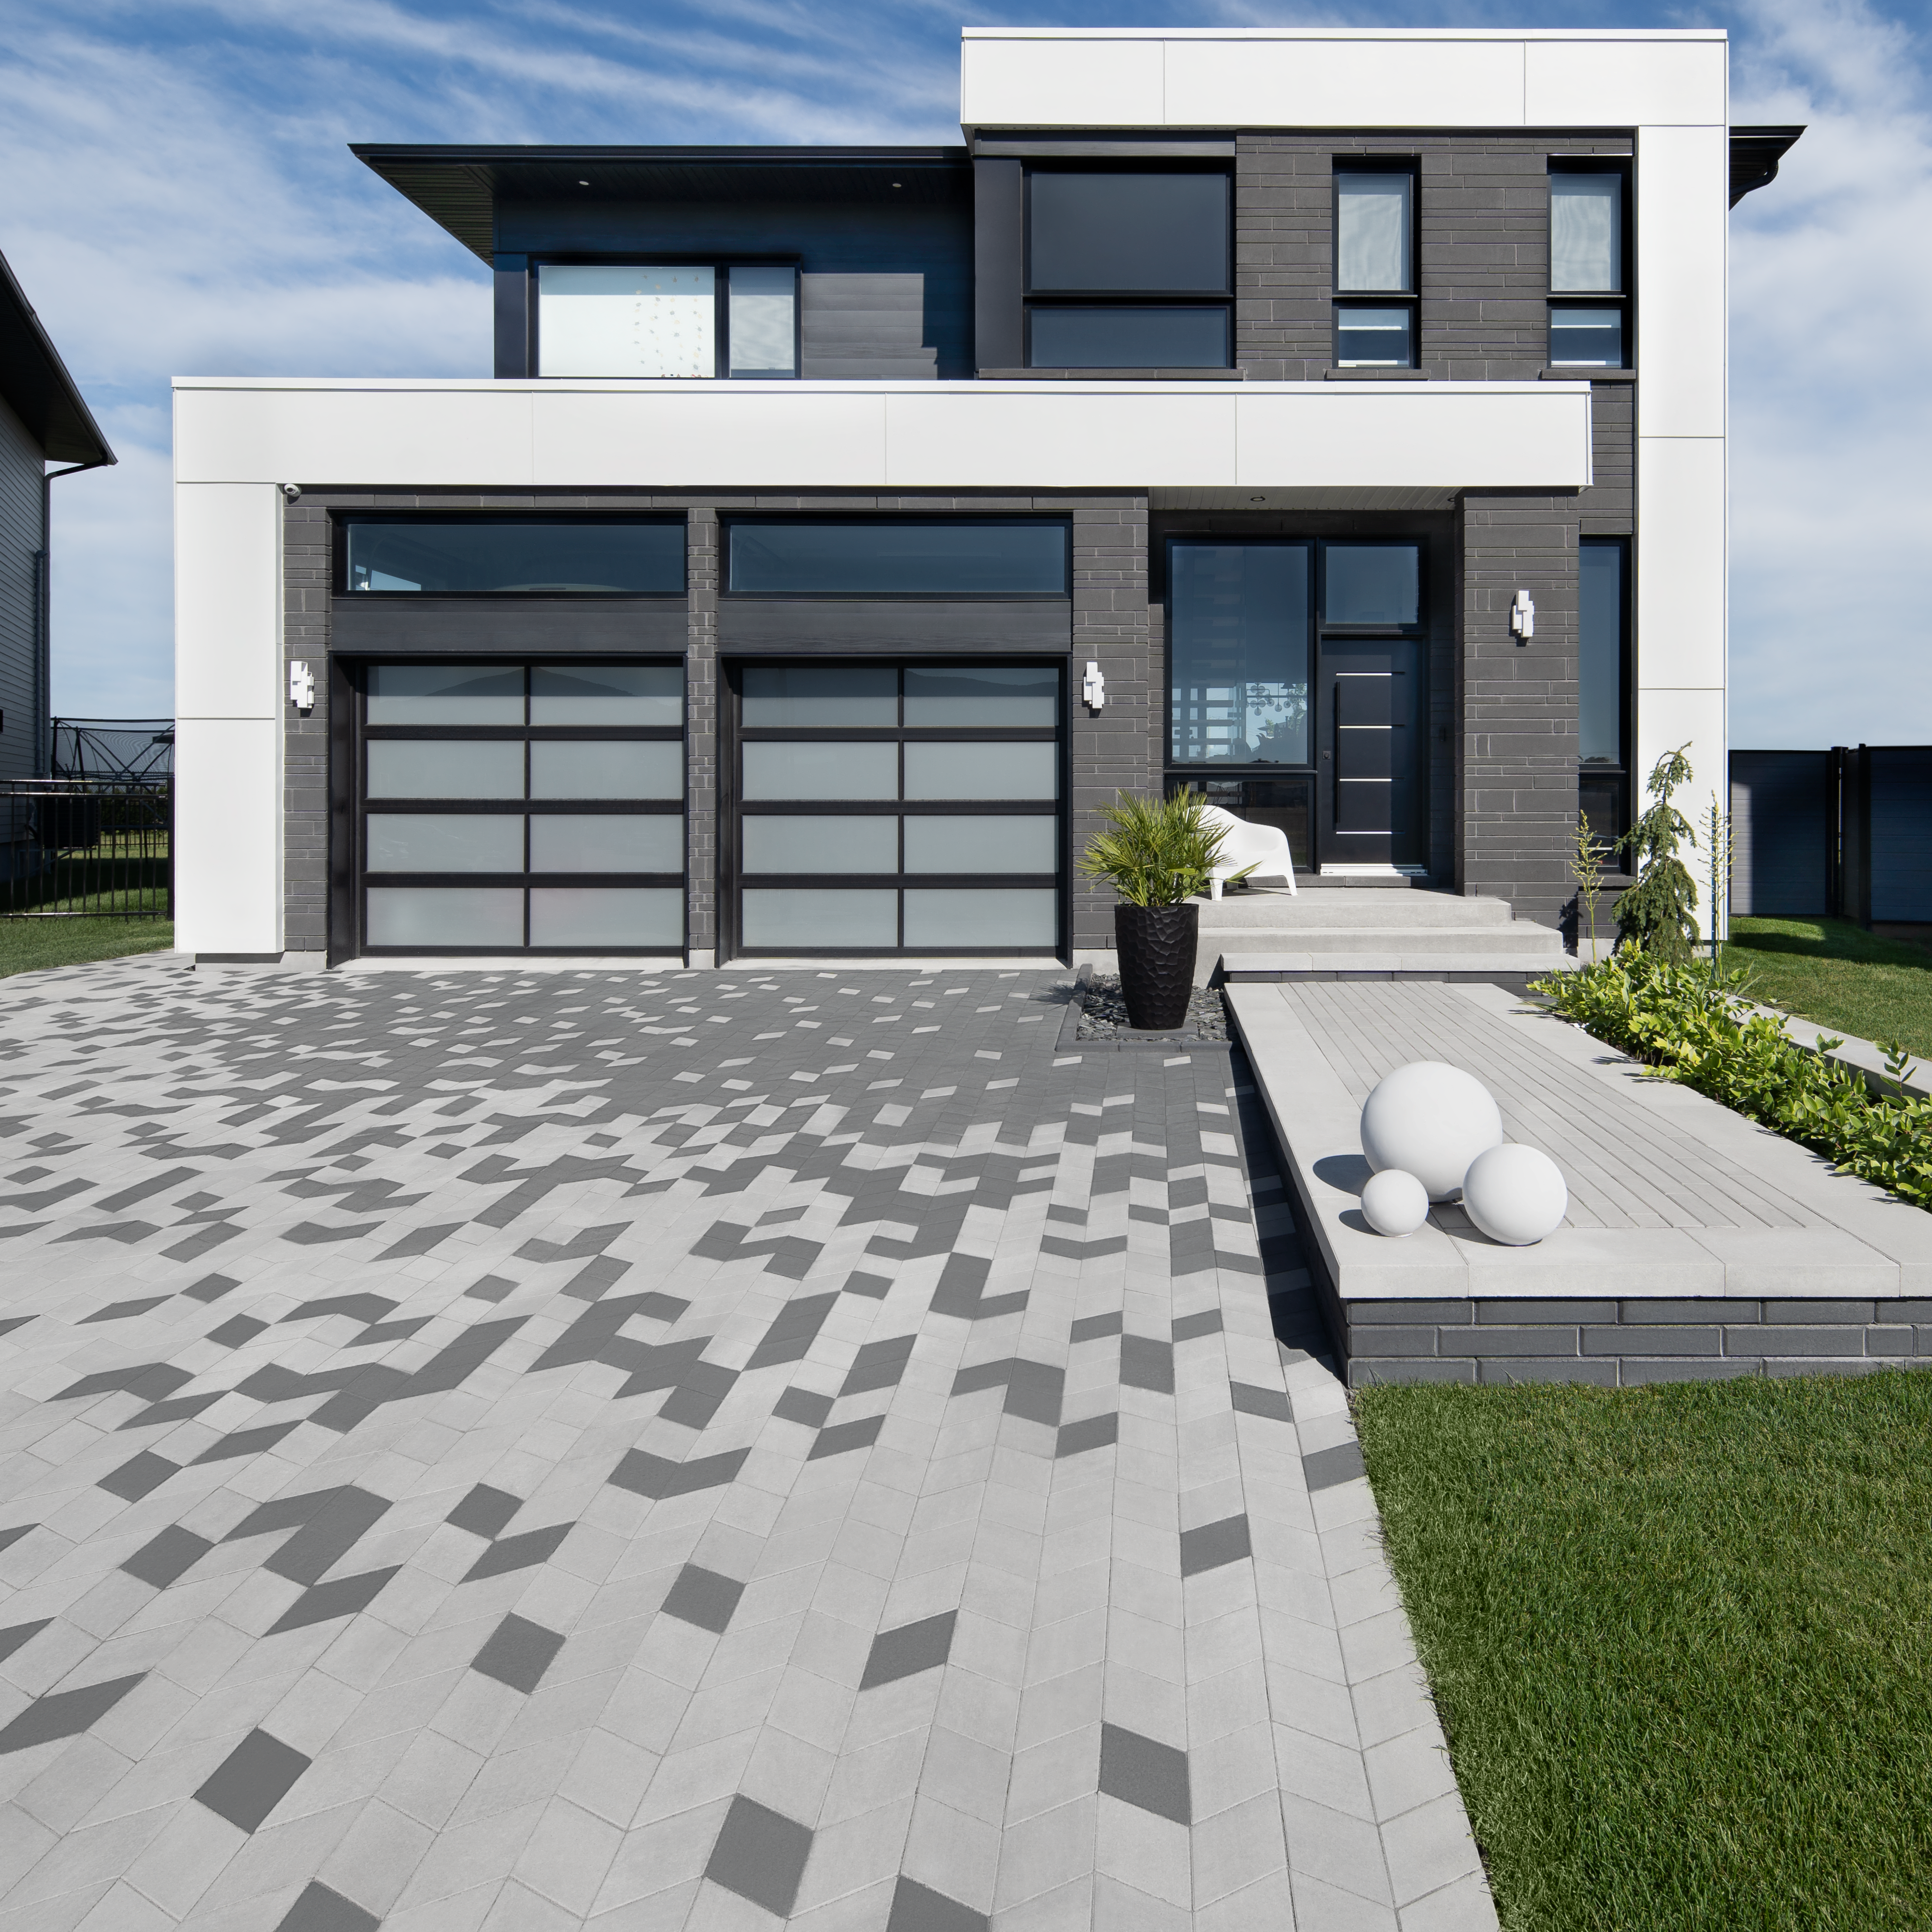 Diamond paver in Charcoal and Greyed Nickel